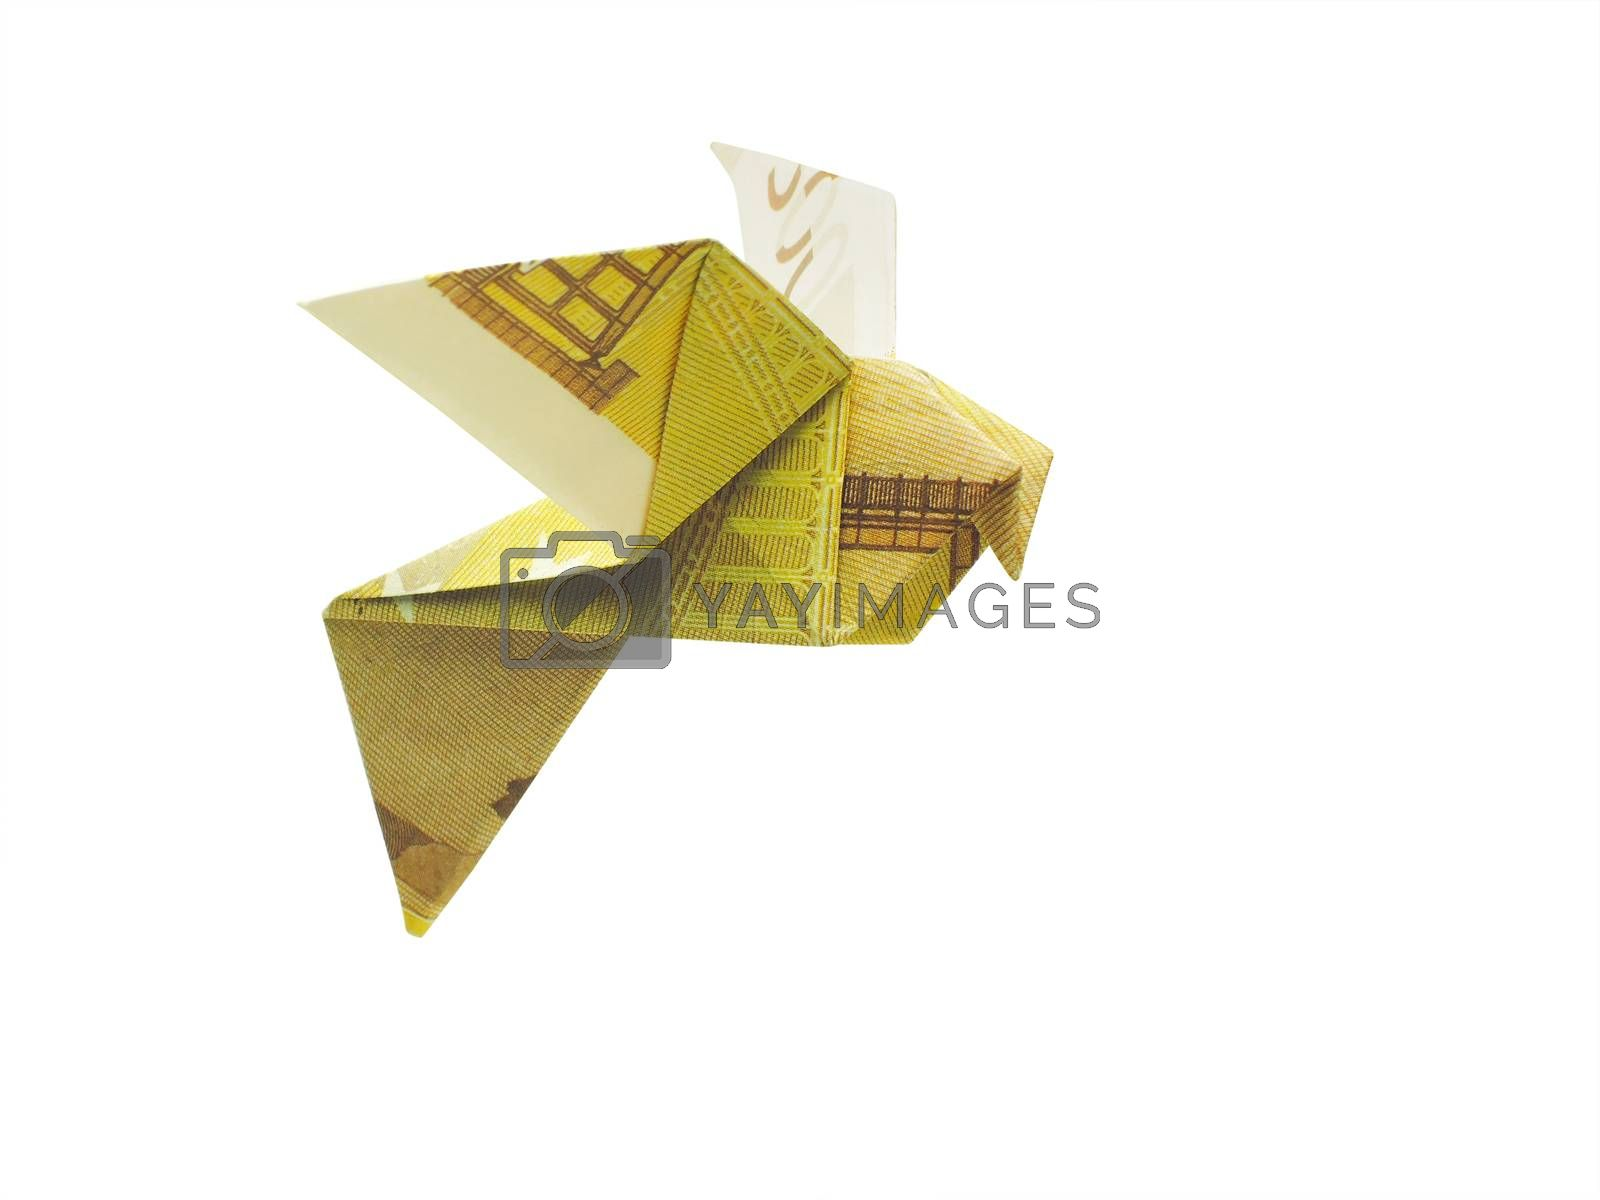 origami birds from 200 euro banknotes